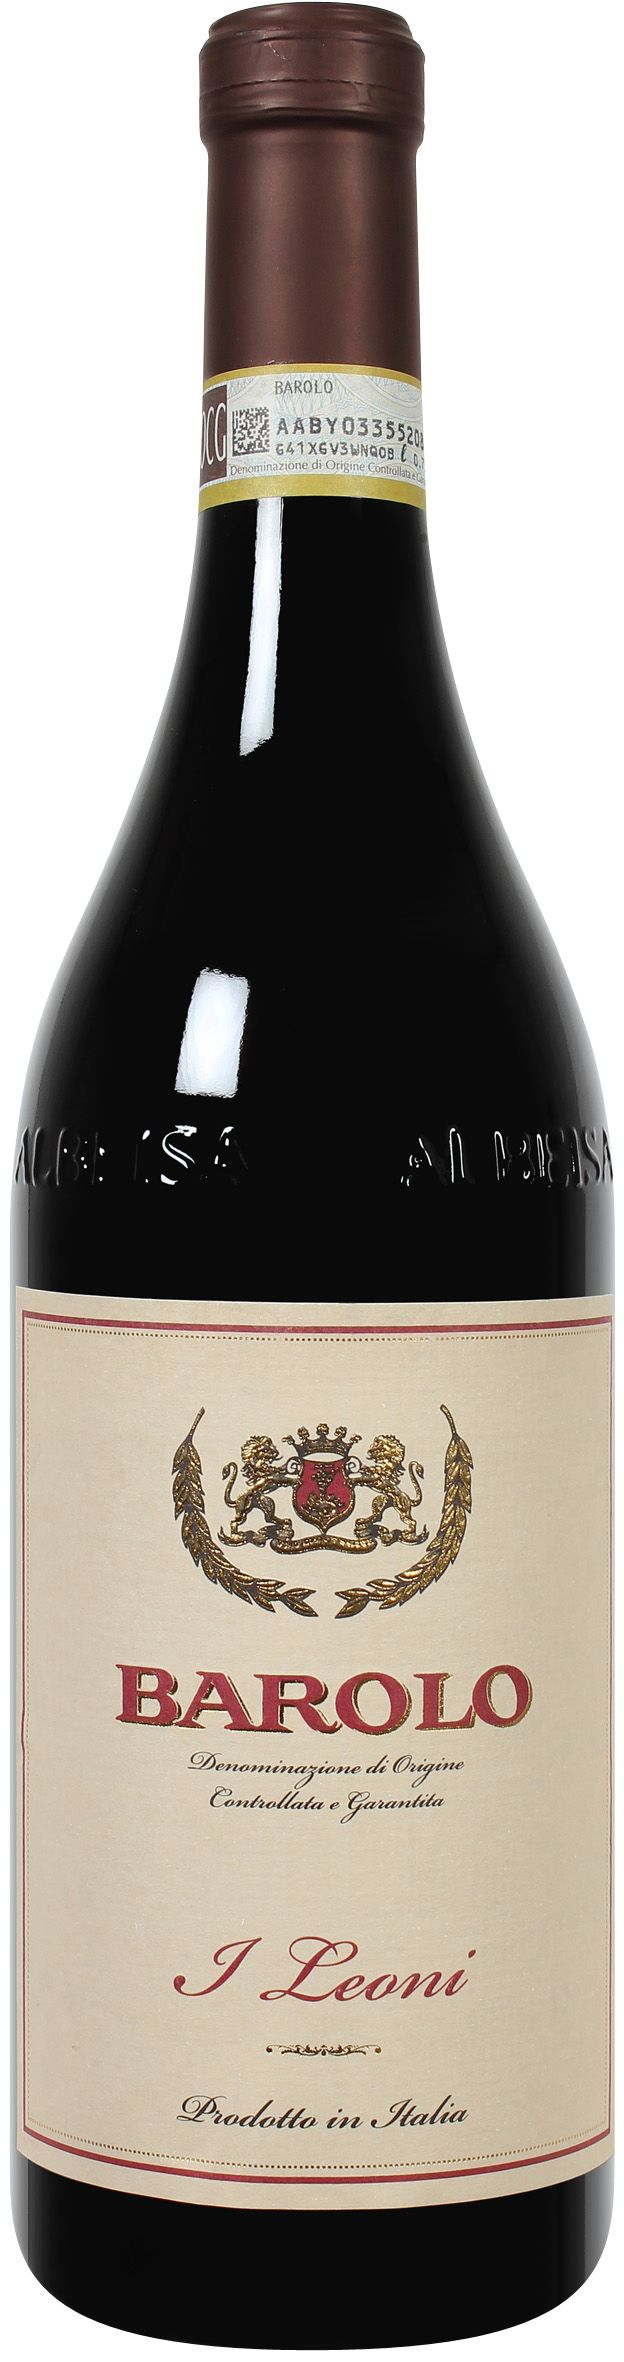 Barolo - the wine of kings, the king of wines. Nebbiolo at its best!